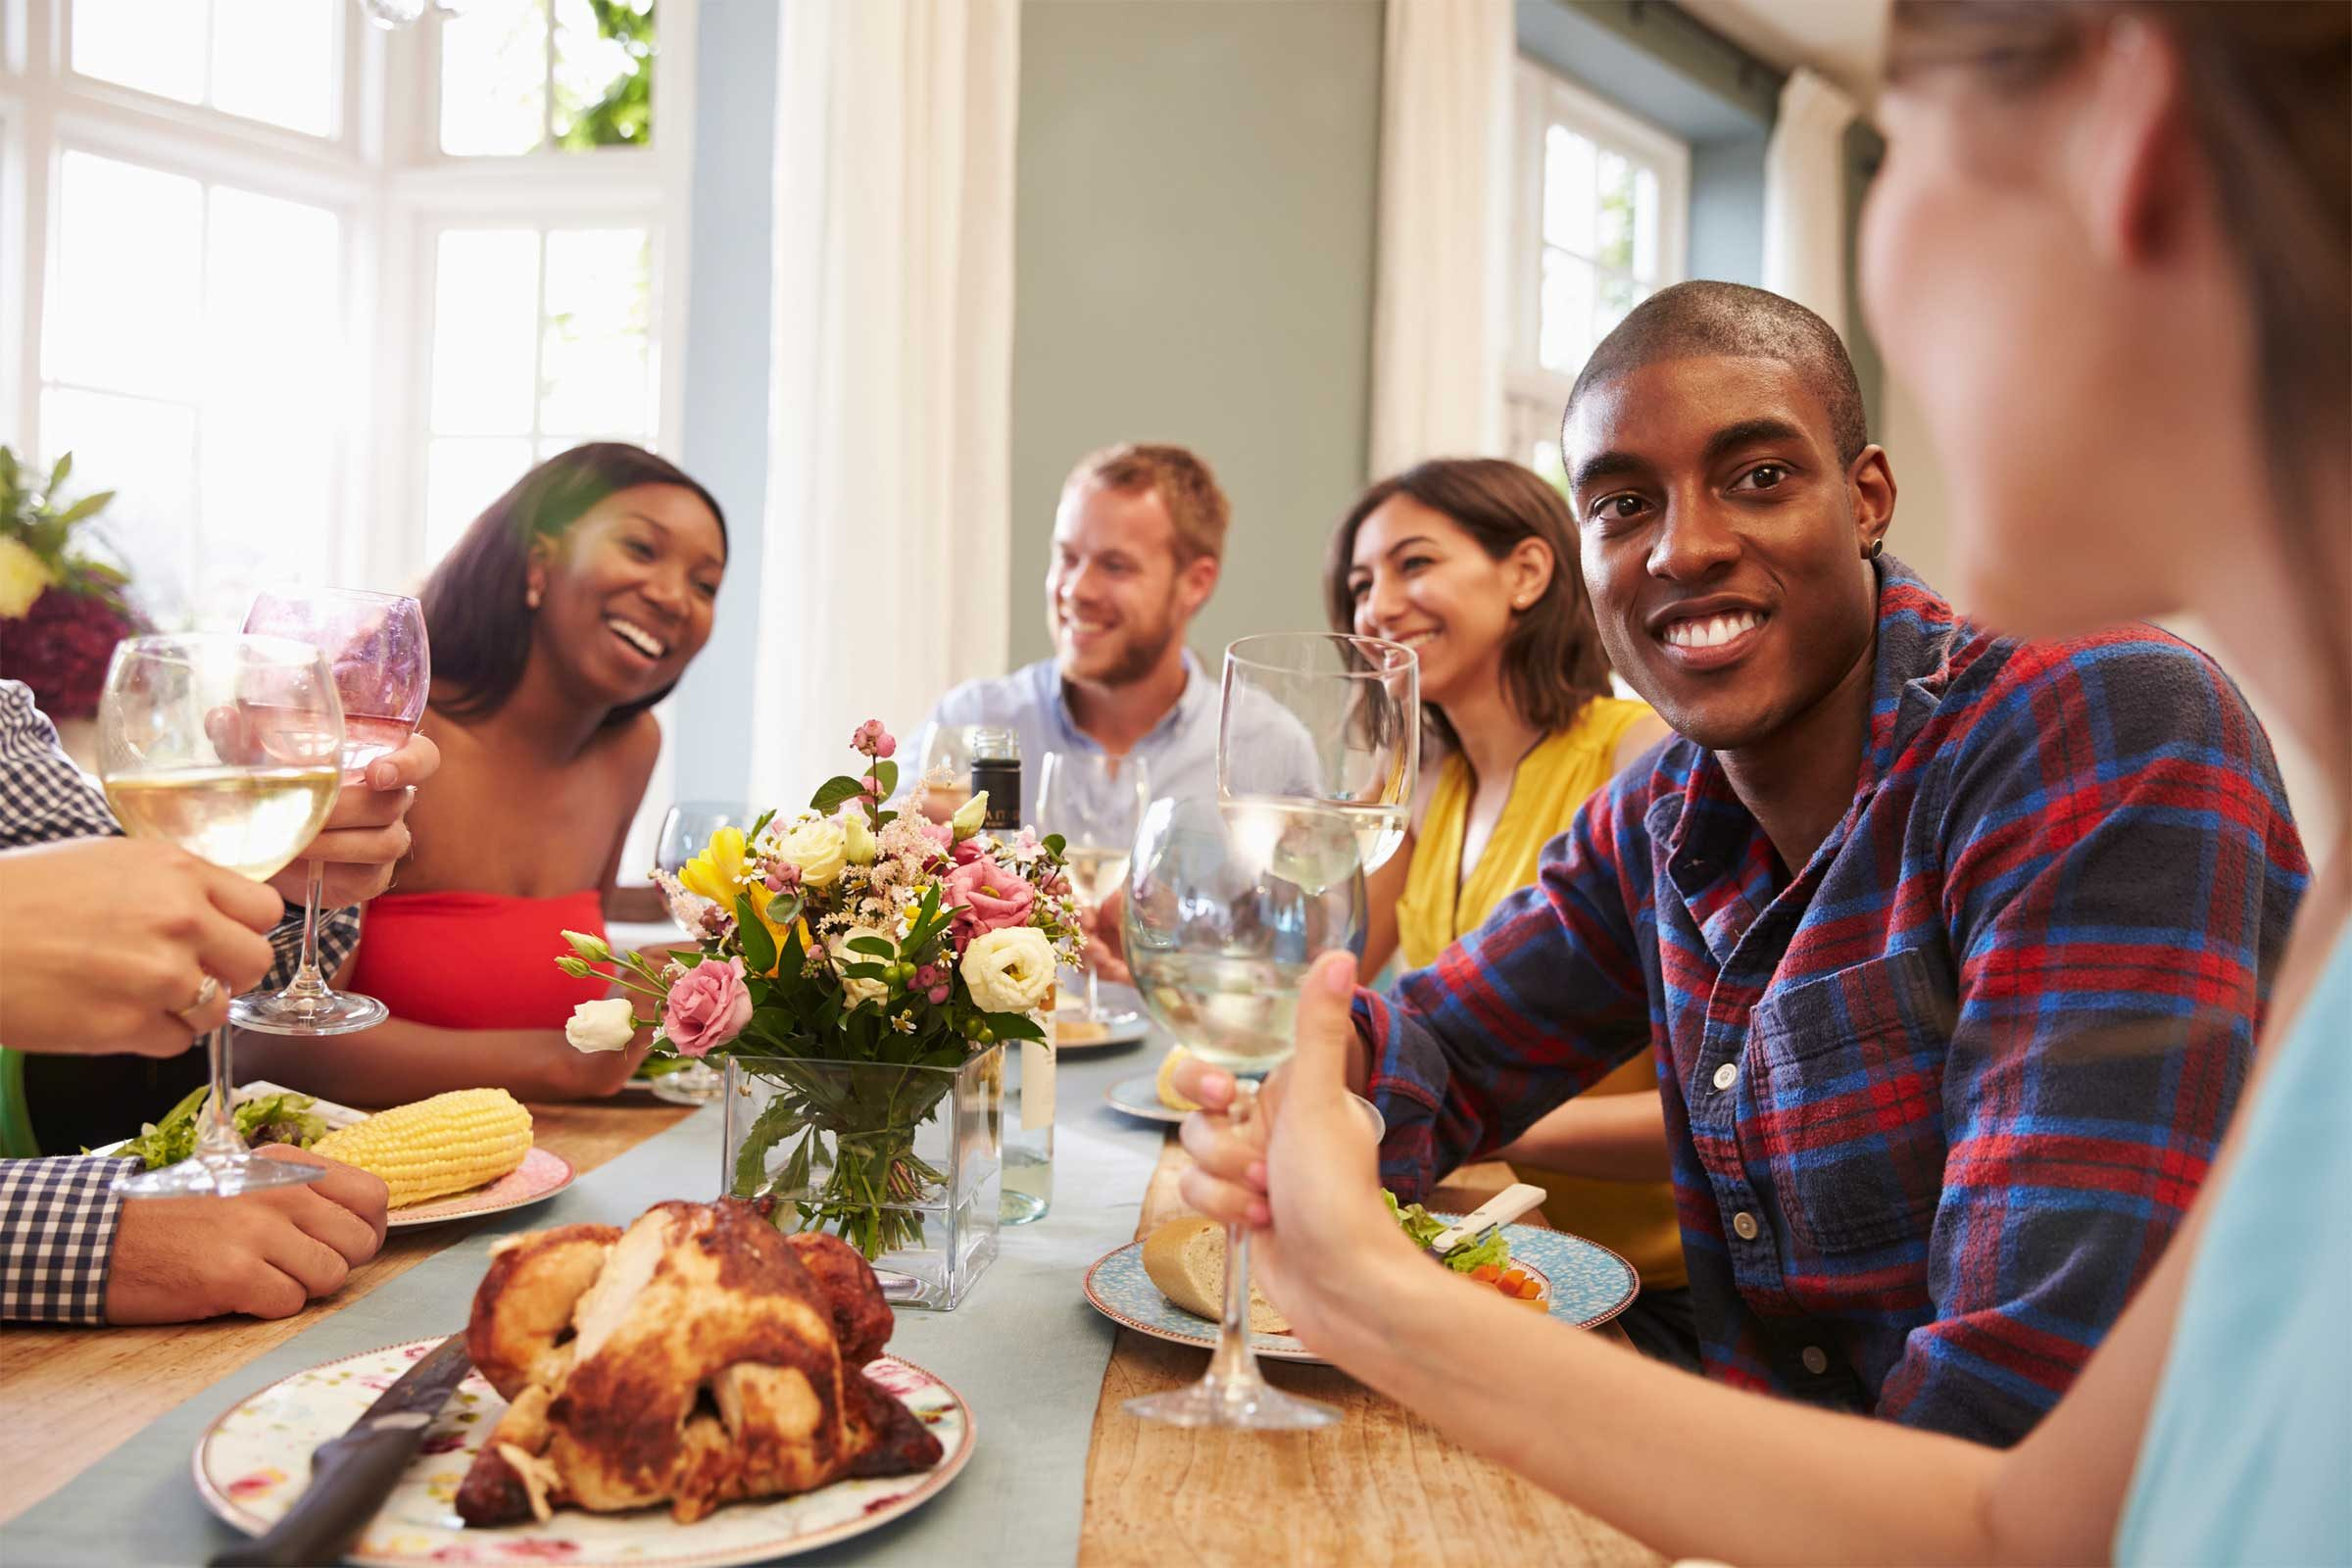 How to Make a Seating Chart for a Holiday Dinner